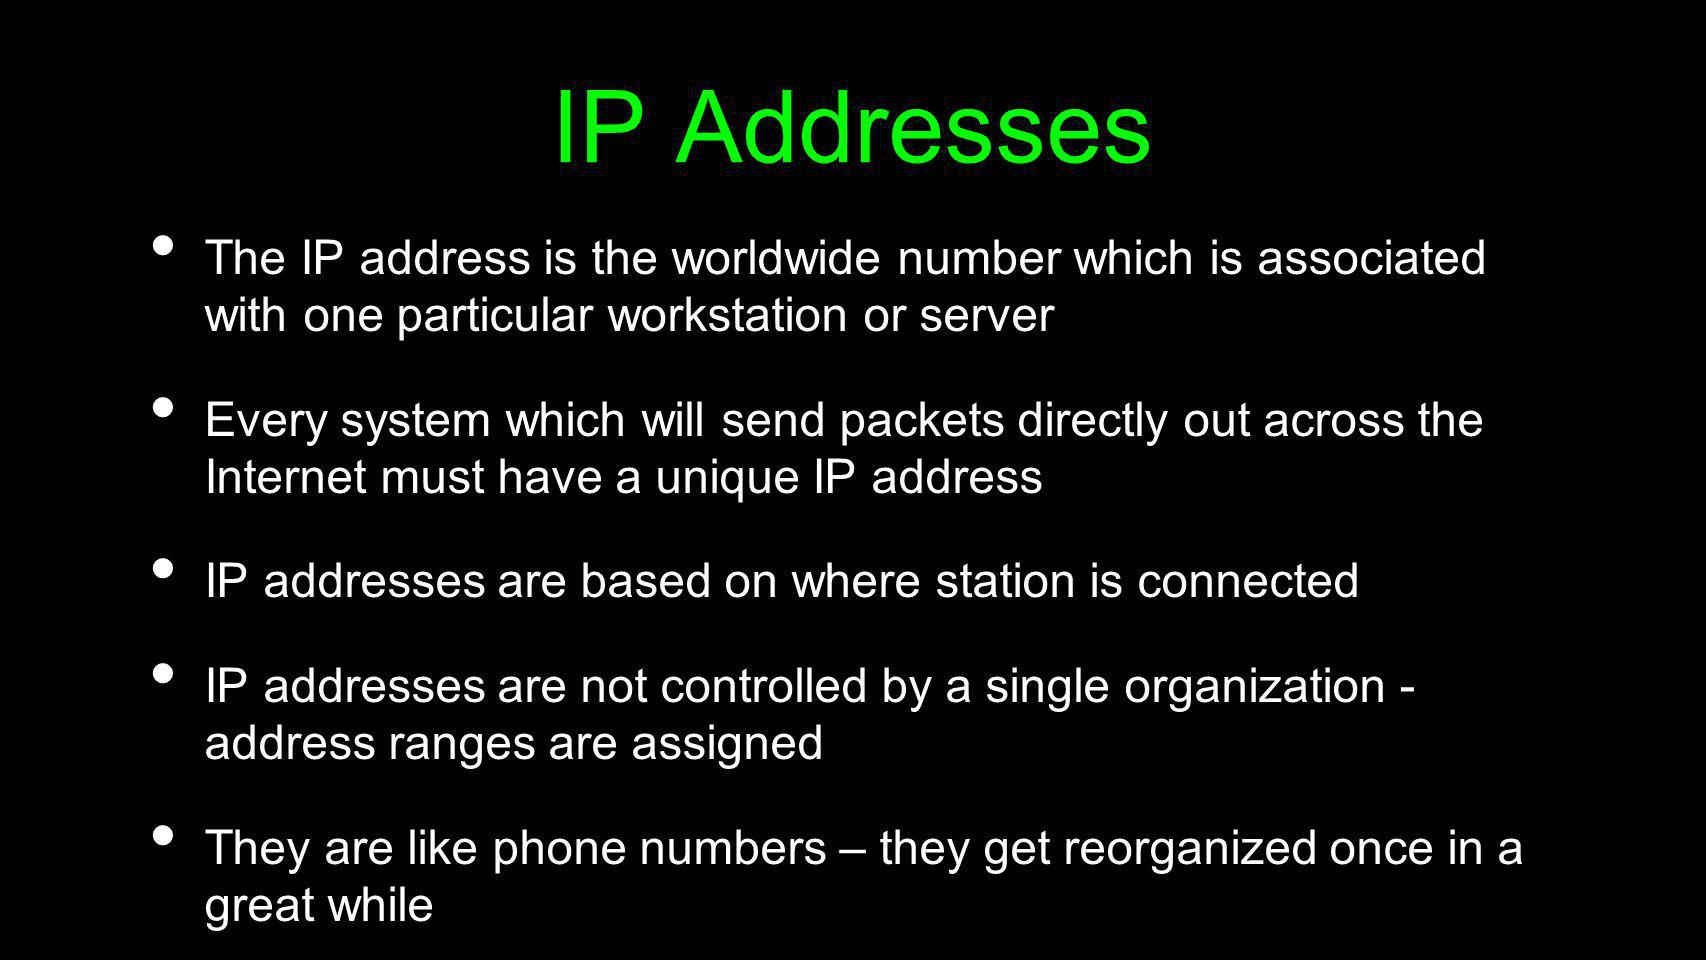 IP AddressesThe IP address is the worldwide number which is associated with one particular workstation or server.